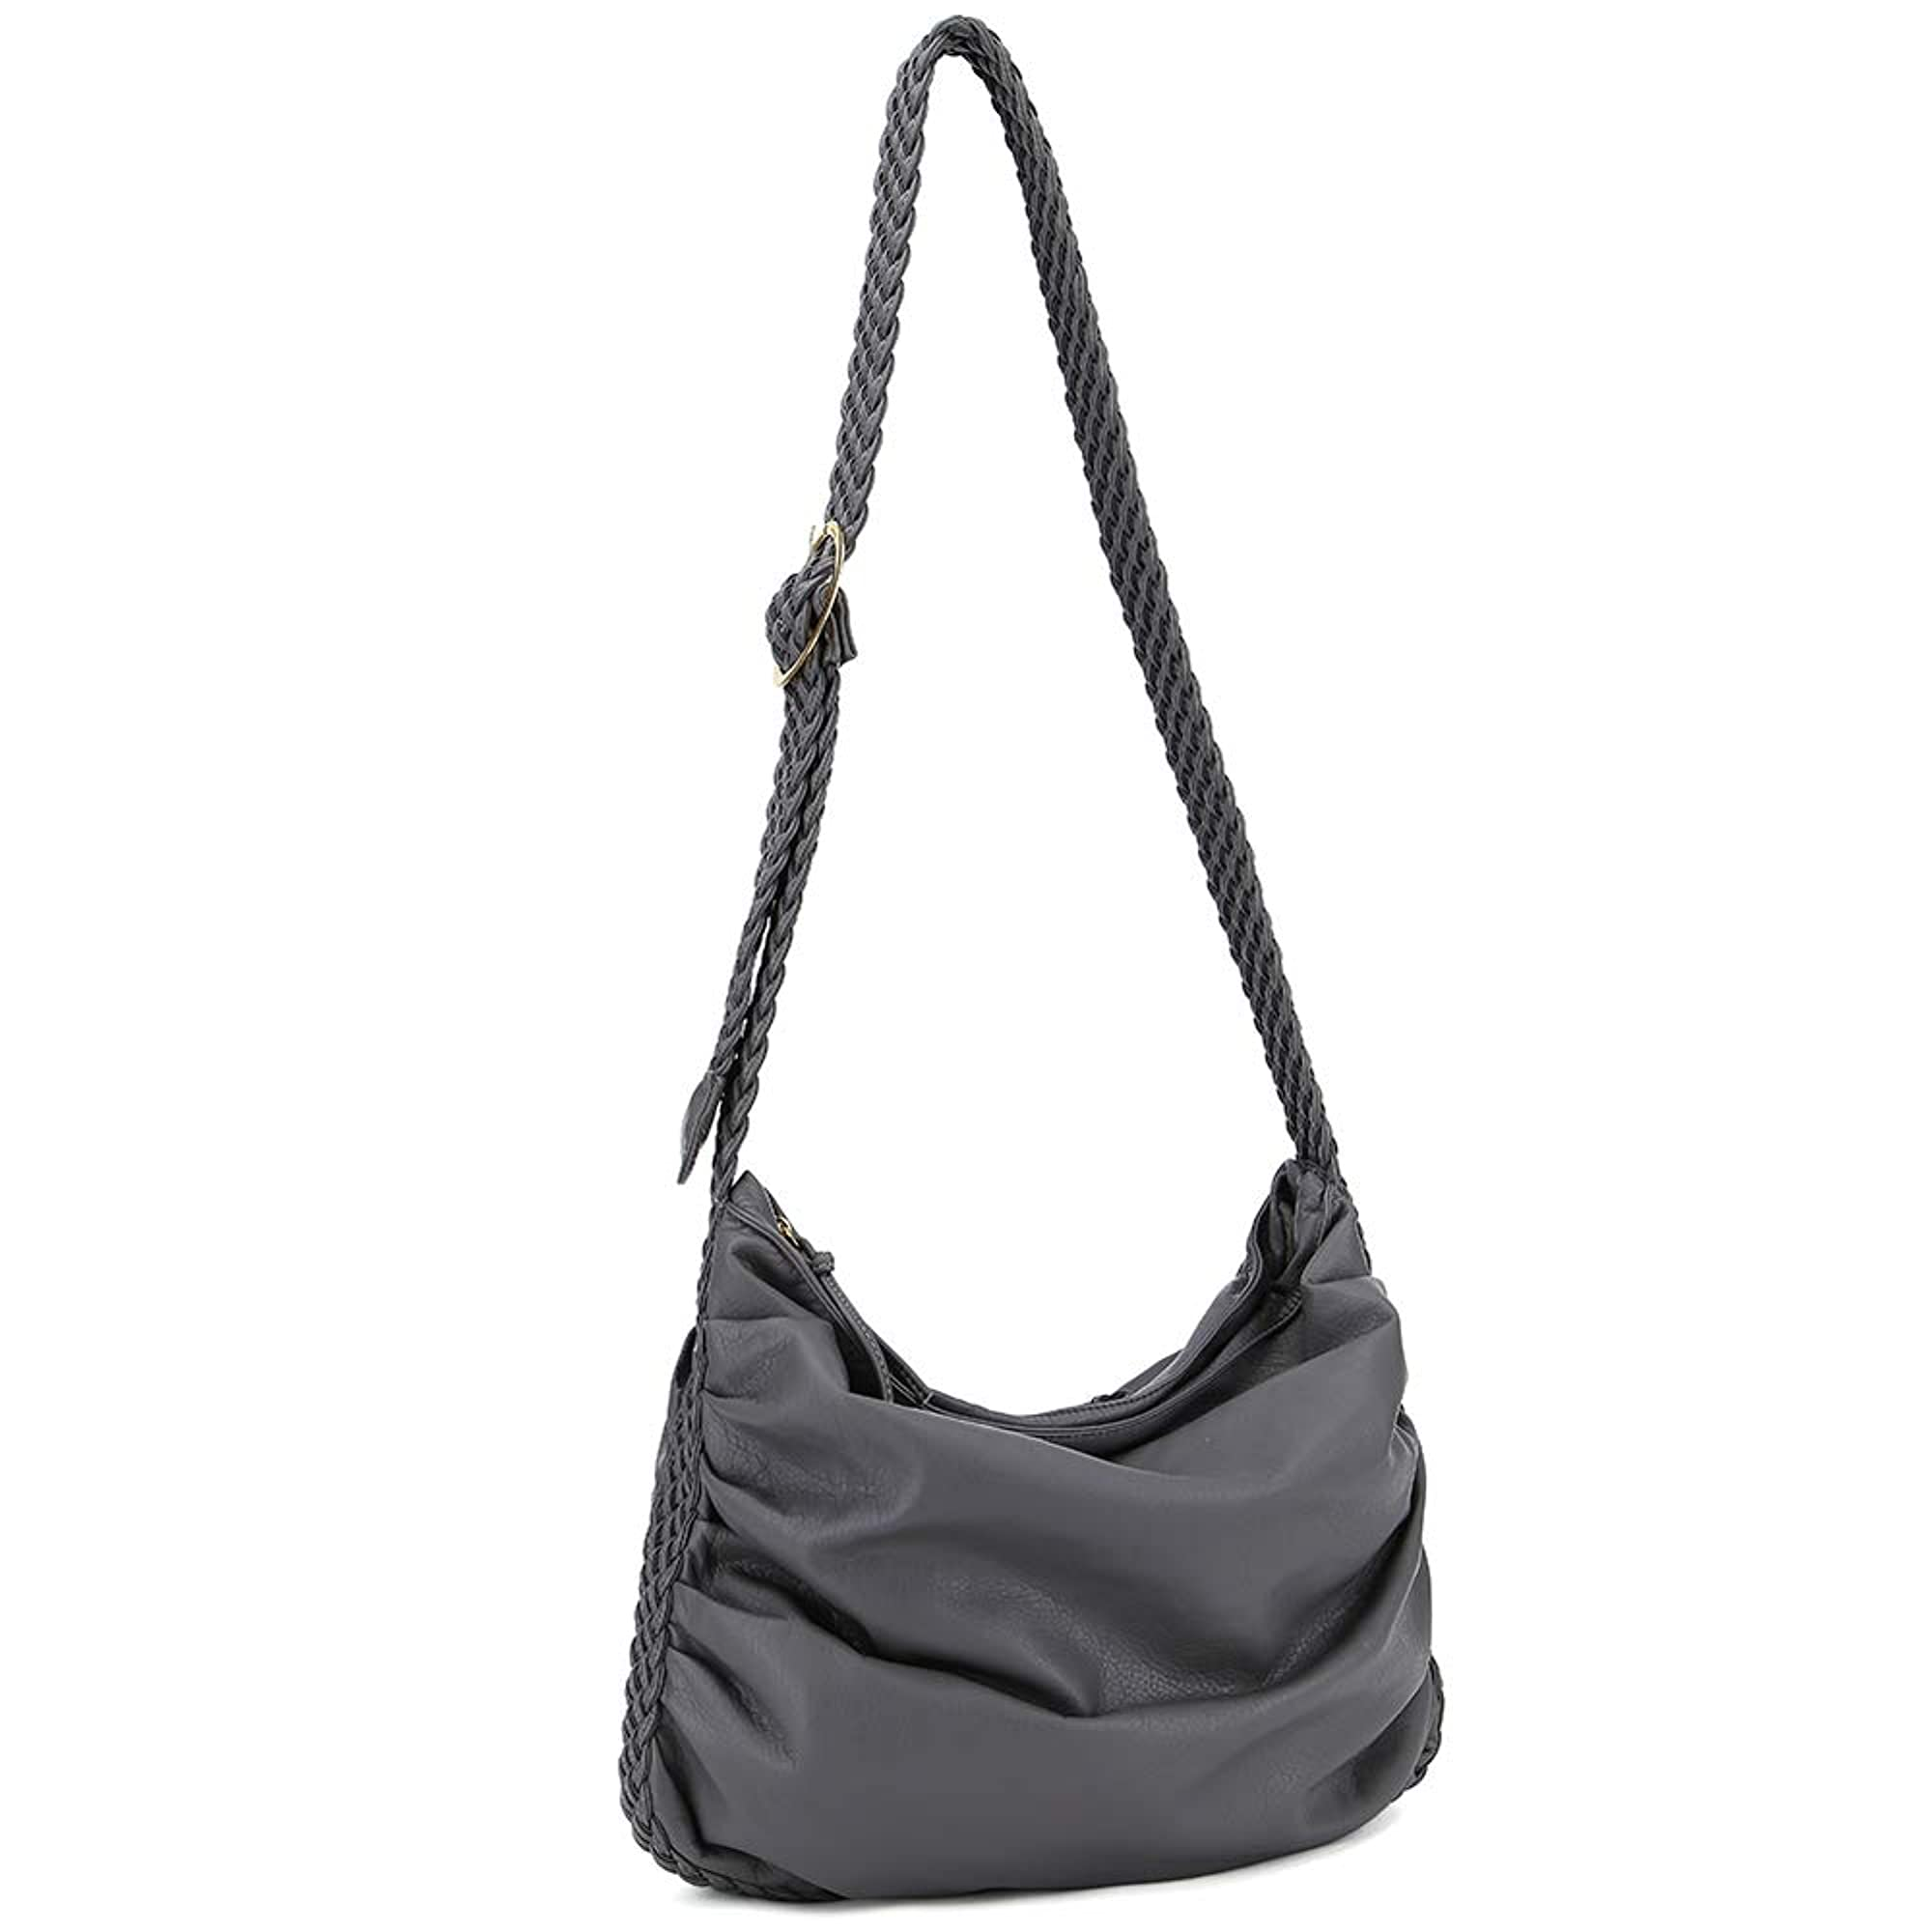 Vegan Leather Ruched Hobo And Shoulder Bag